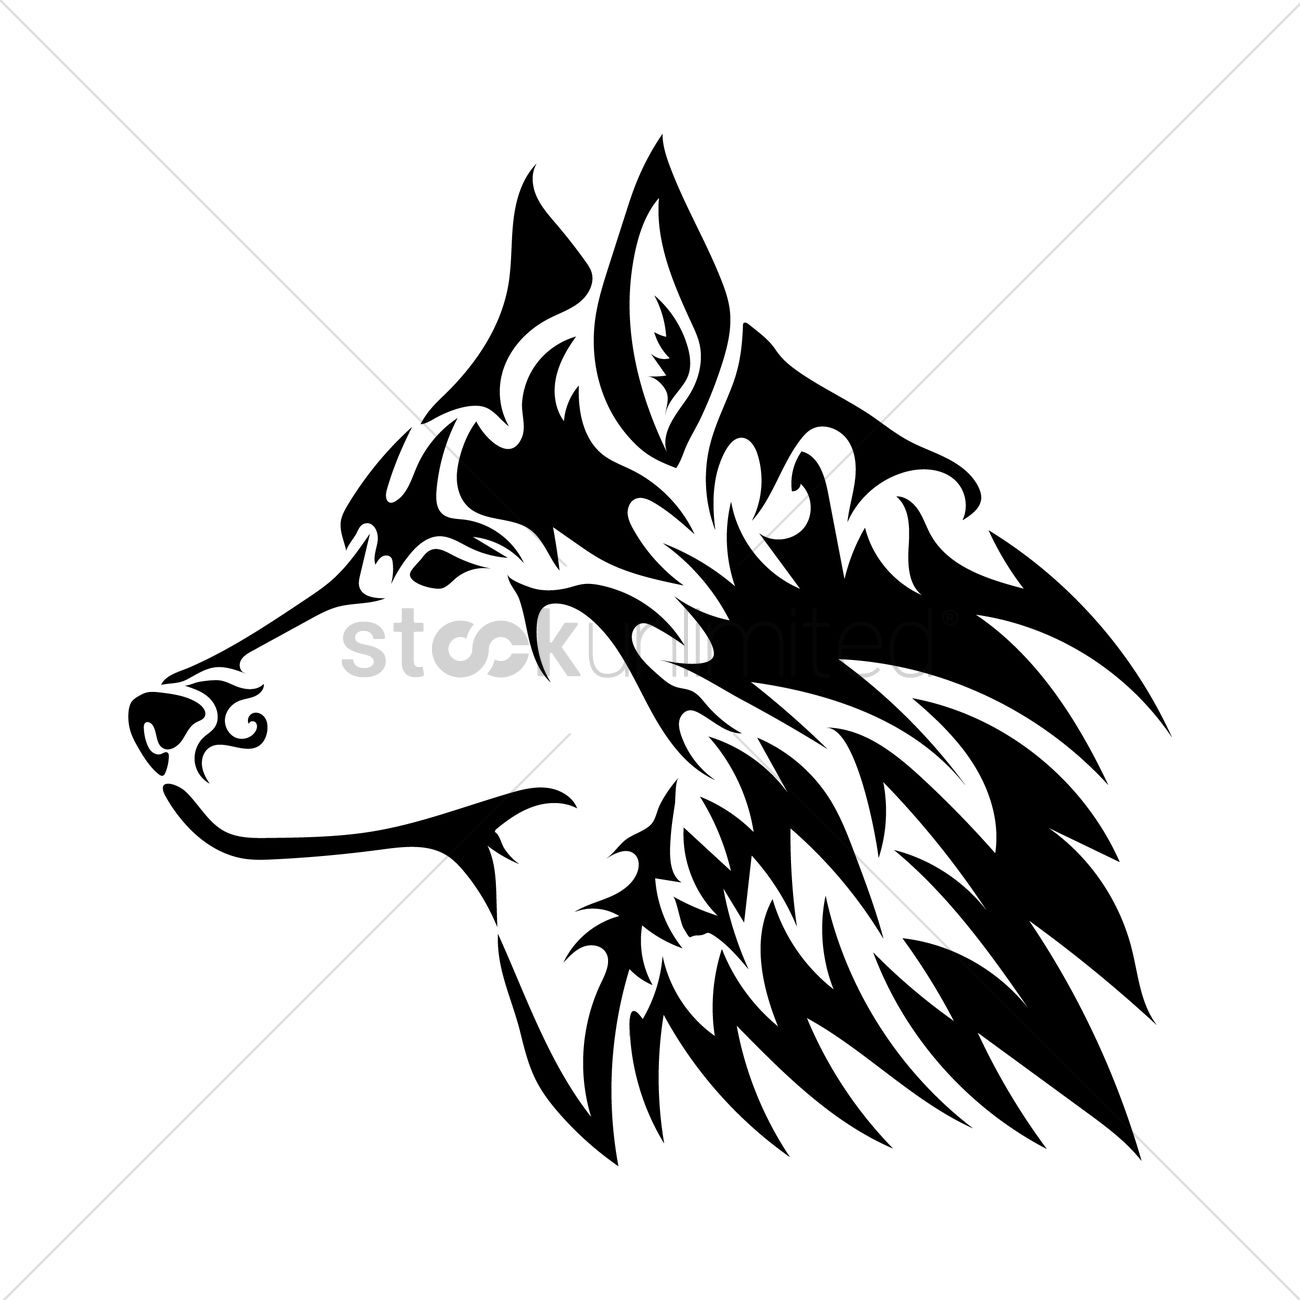 Wolf Tattoo Design Vector Image 1433600 Stockunlimited